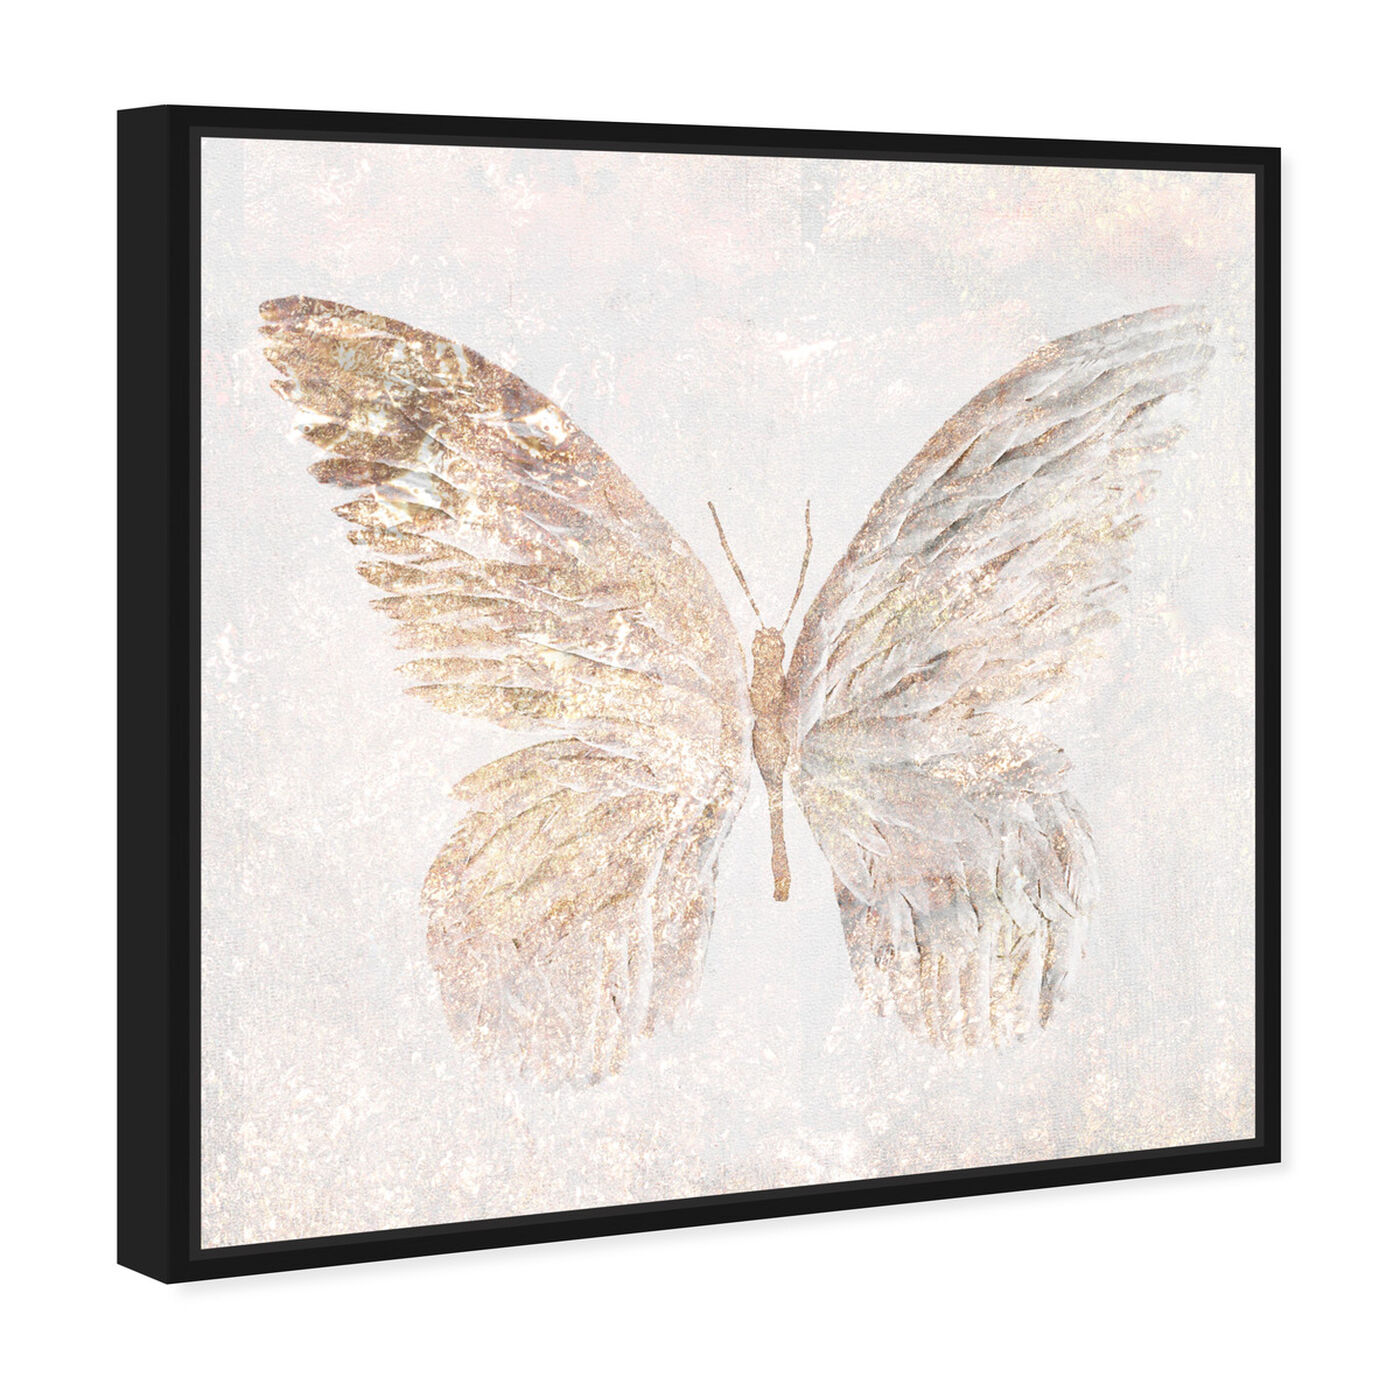 Angled view of Golden Butterfly Glimmer featuring animals and insects art.